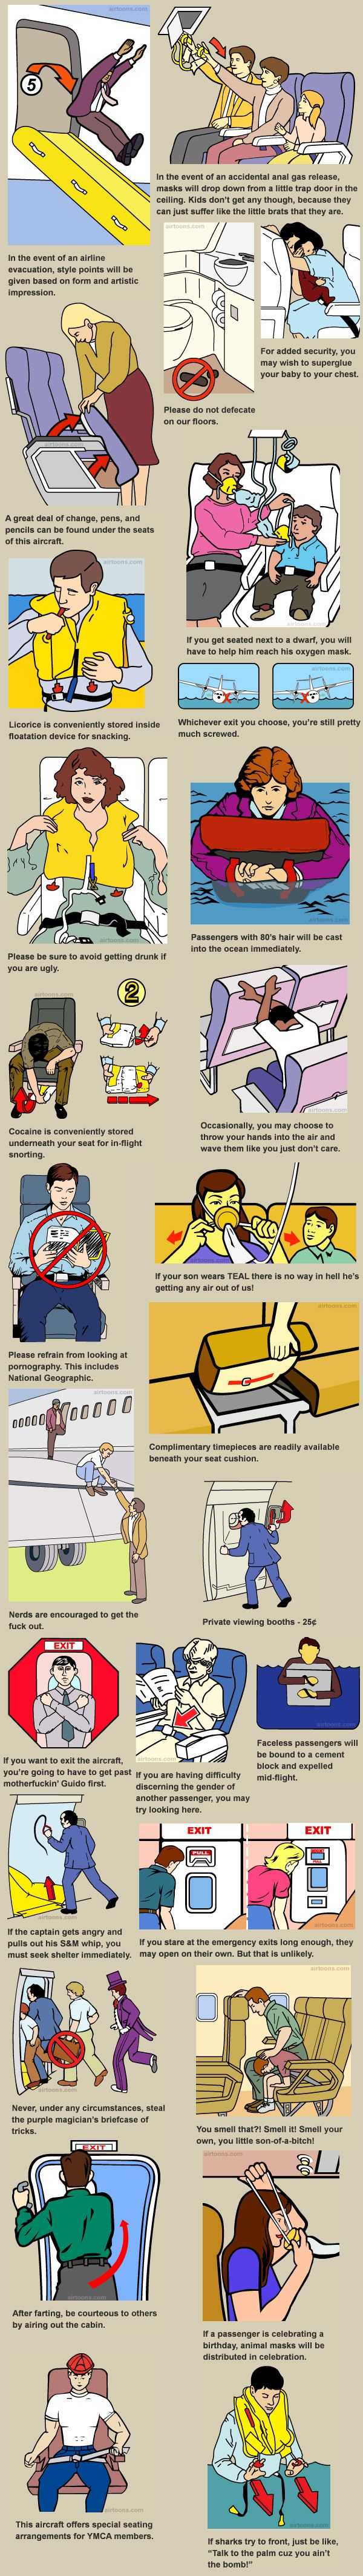 Airtoons: On some international flights, man...you wonder wtf is going on with the safety pamphlet. Laughed so hard! Oh the tears....